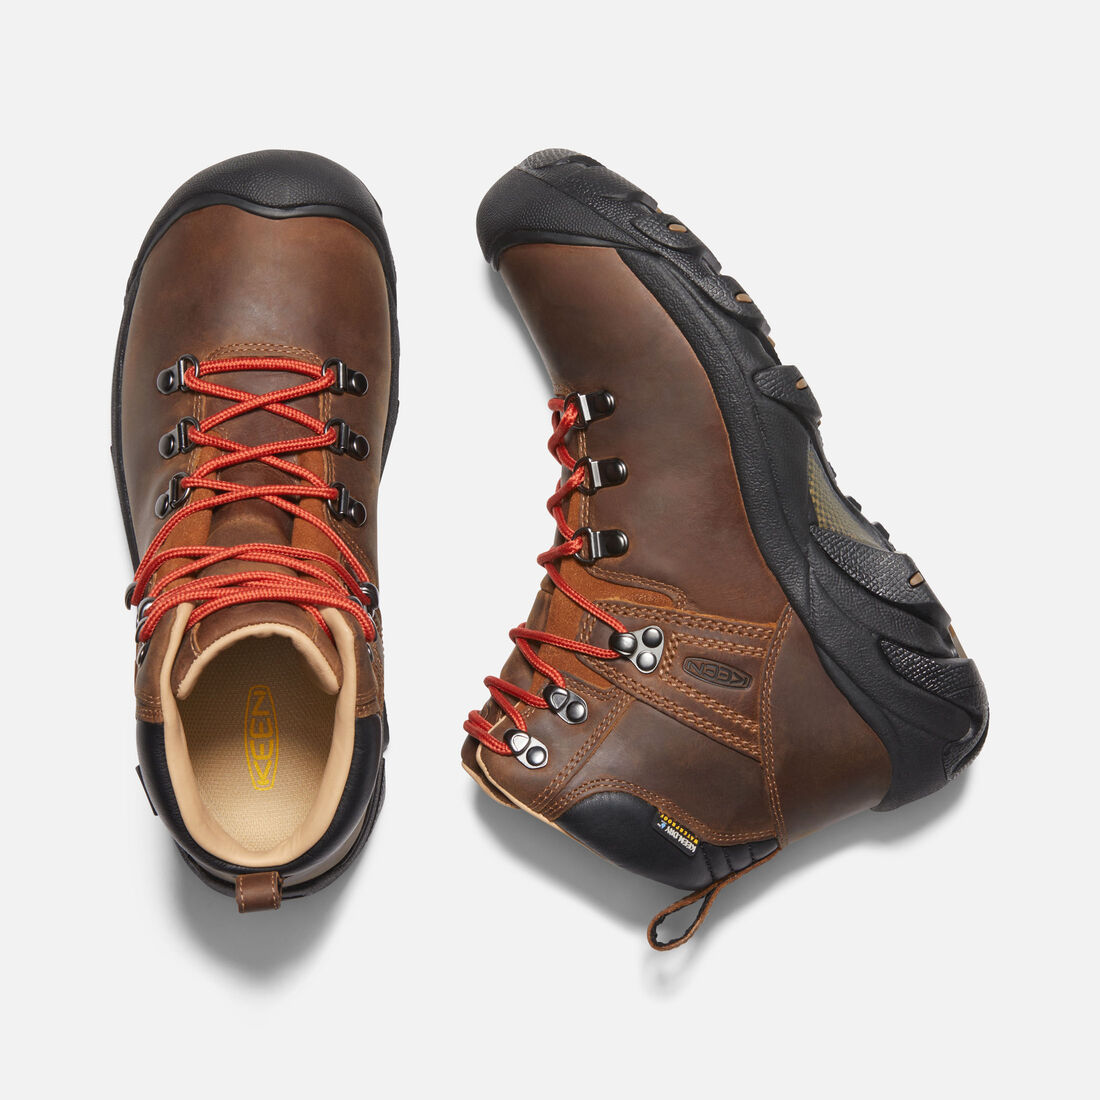 quality design 7b87a a5b1f Women's Pyrenees - European-Style Hiking Boots | KEEN Footwear